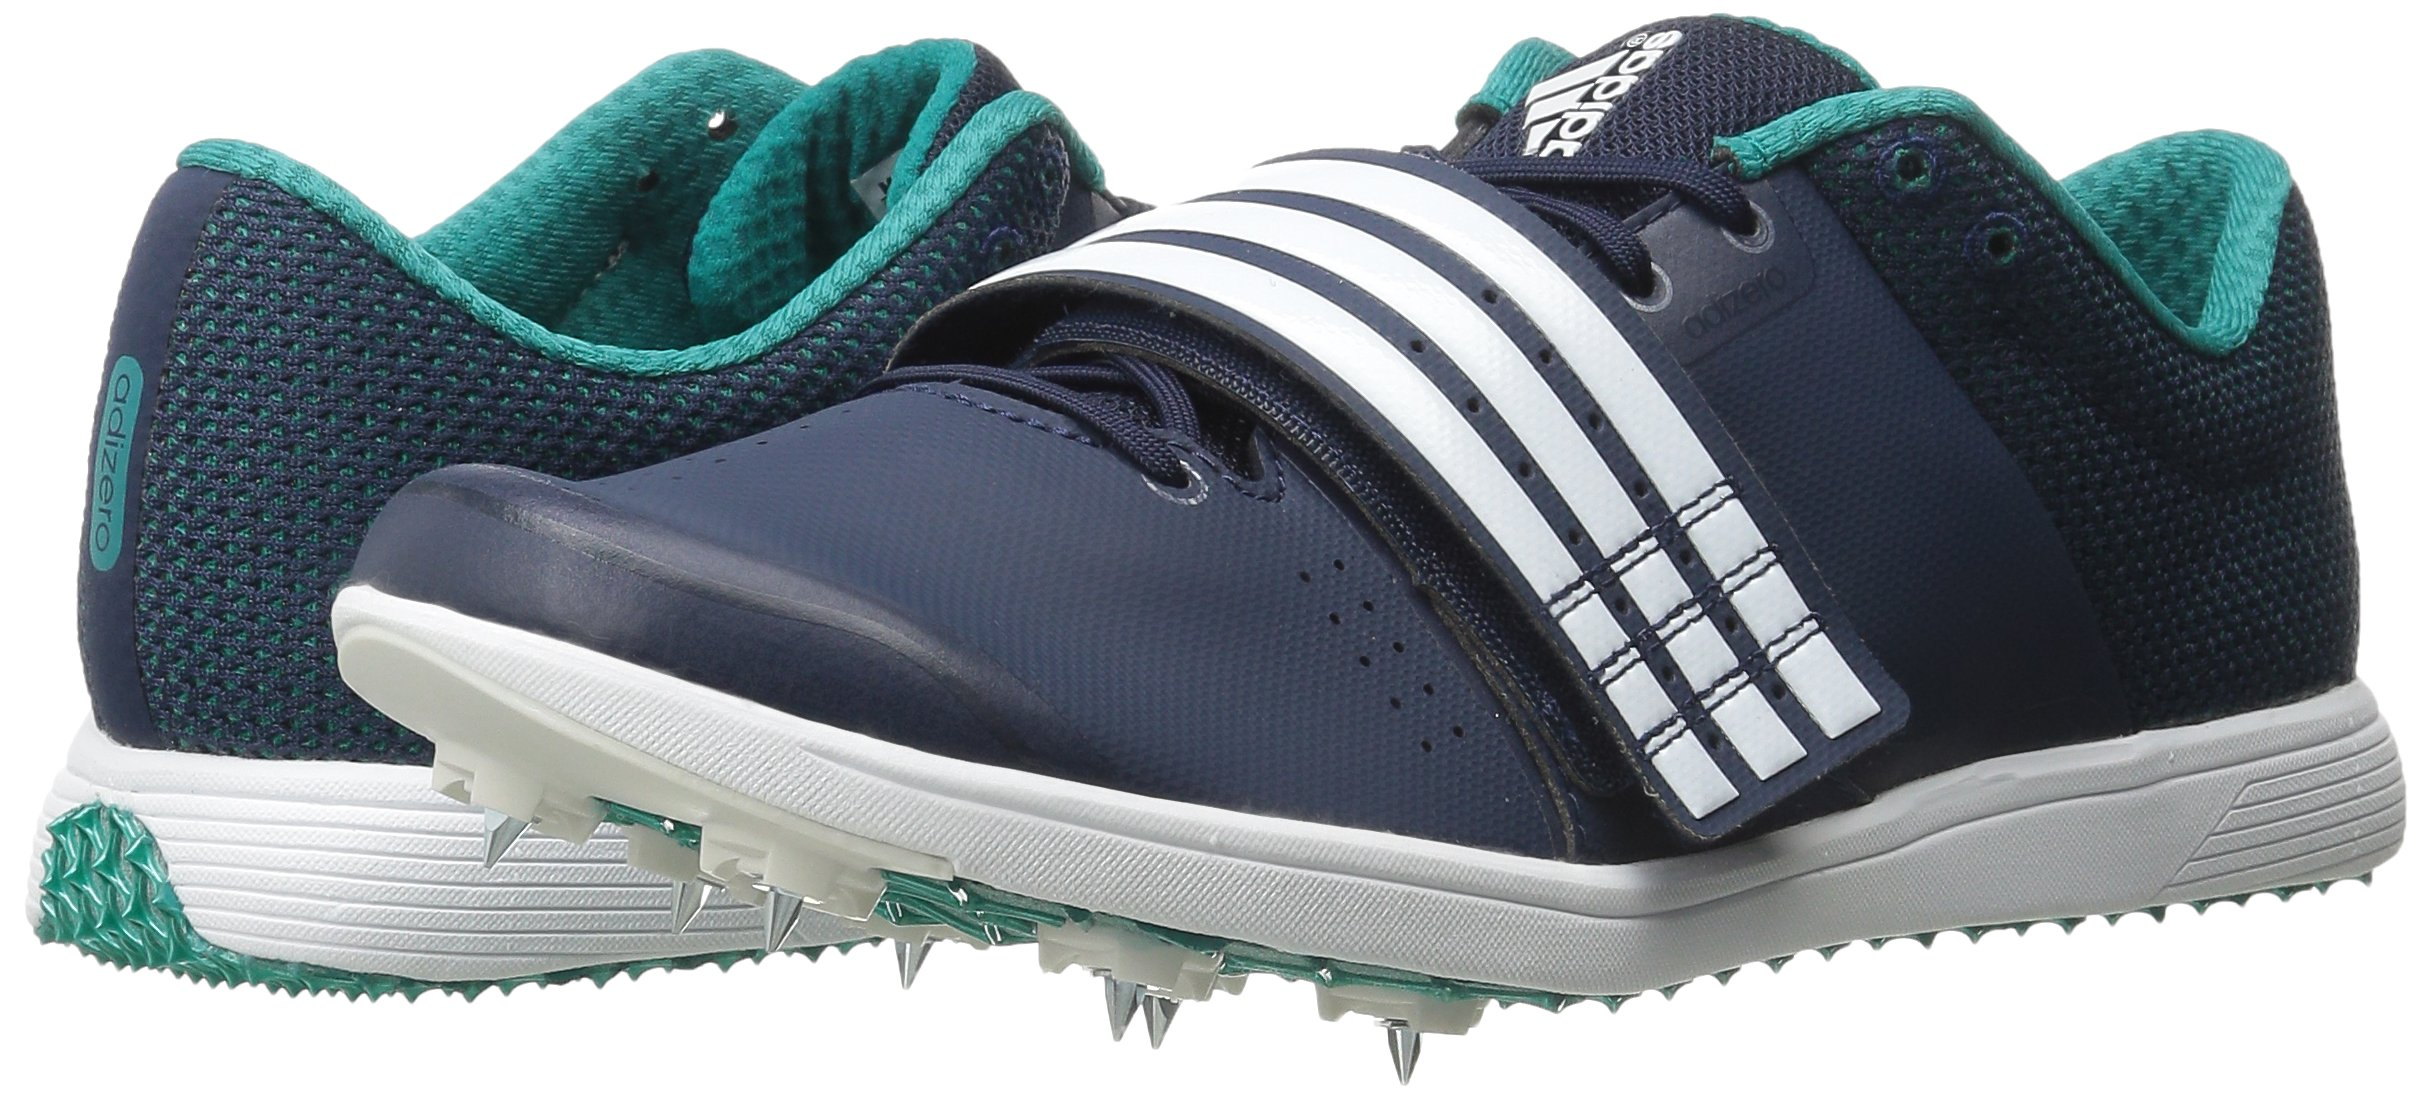 adidas Performance Women's Adizero TJ/PV Running Shoe with Spikes,Collegiate Navy/White/Green,15 M US by adidas (Image #6)